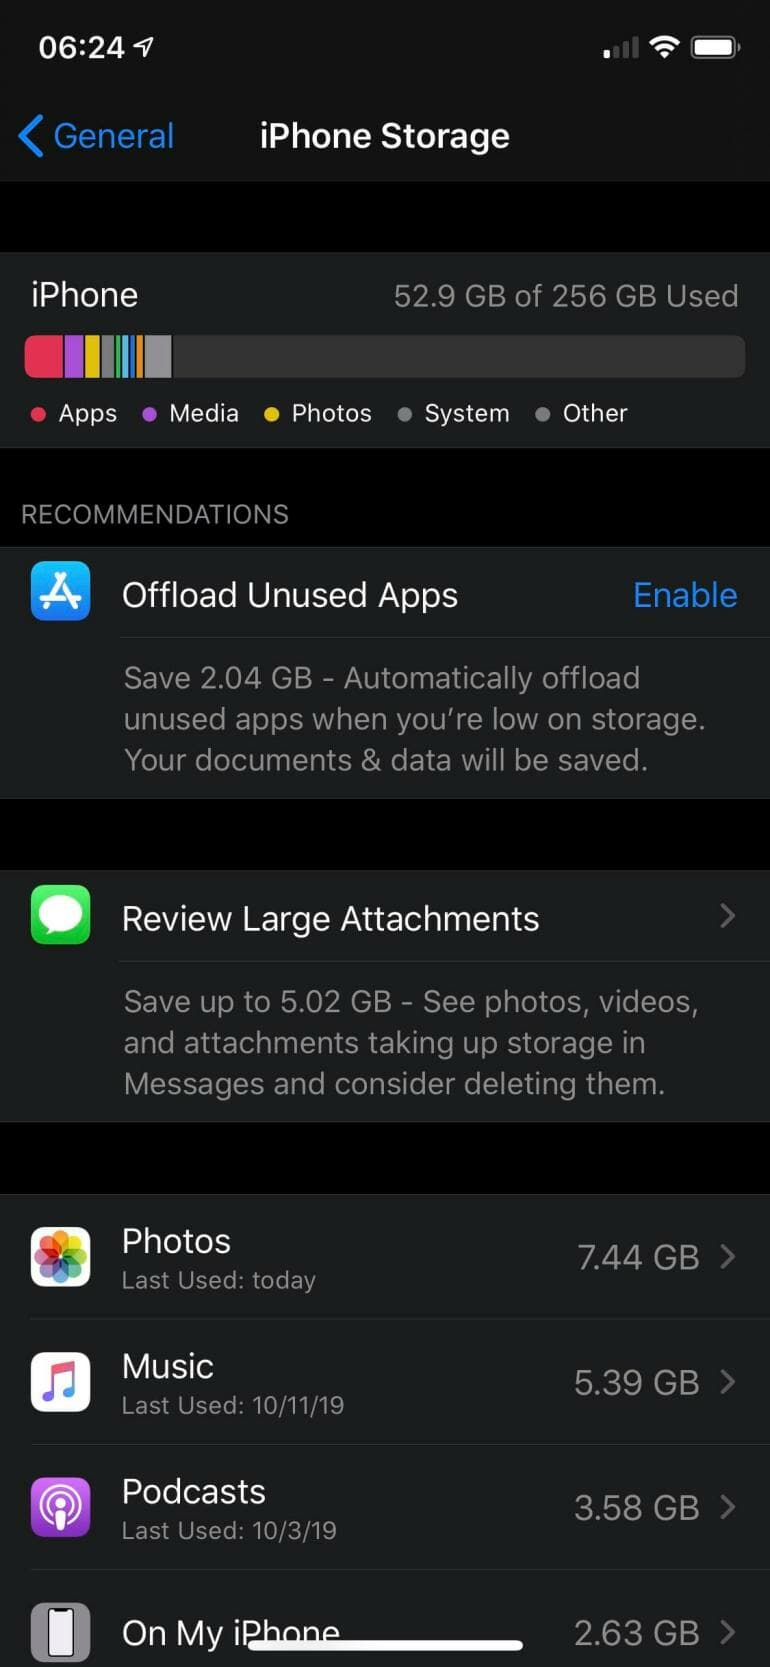 iPhone Storage: Offload Unused Apps and Review Large Attachments